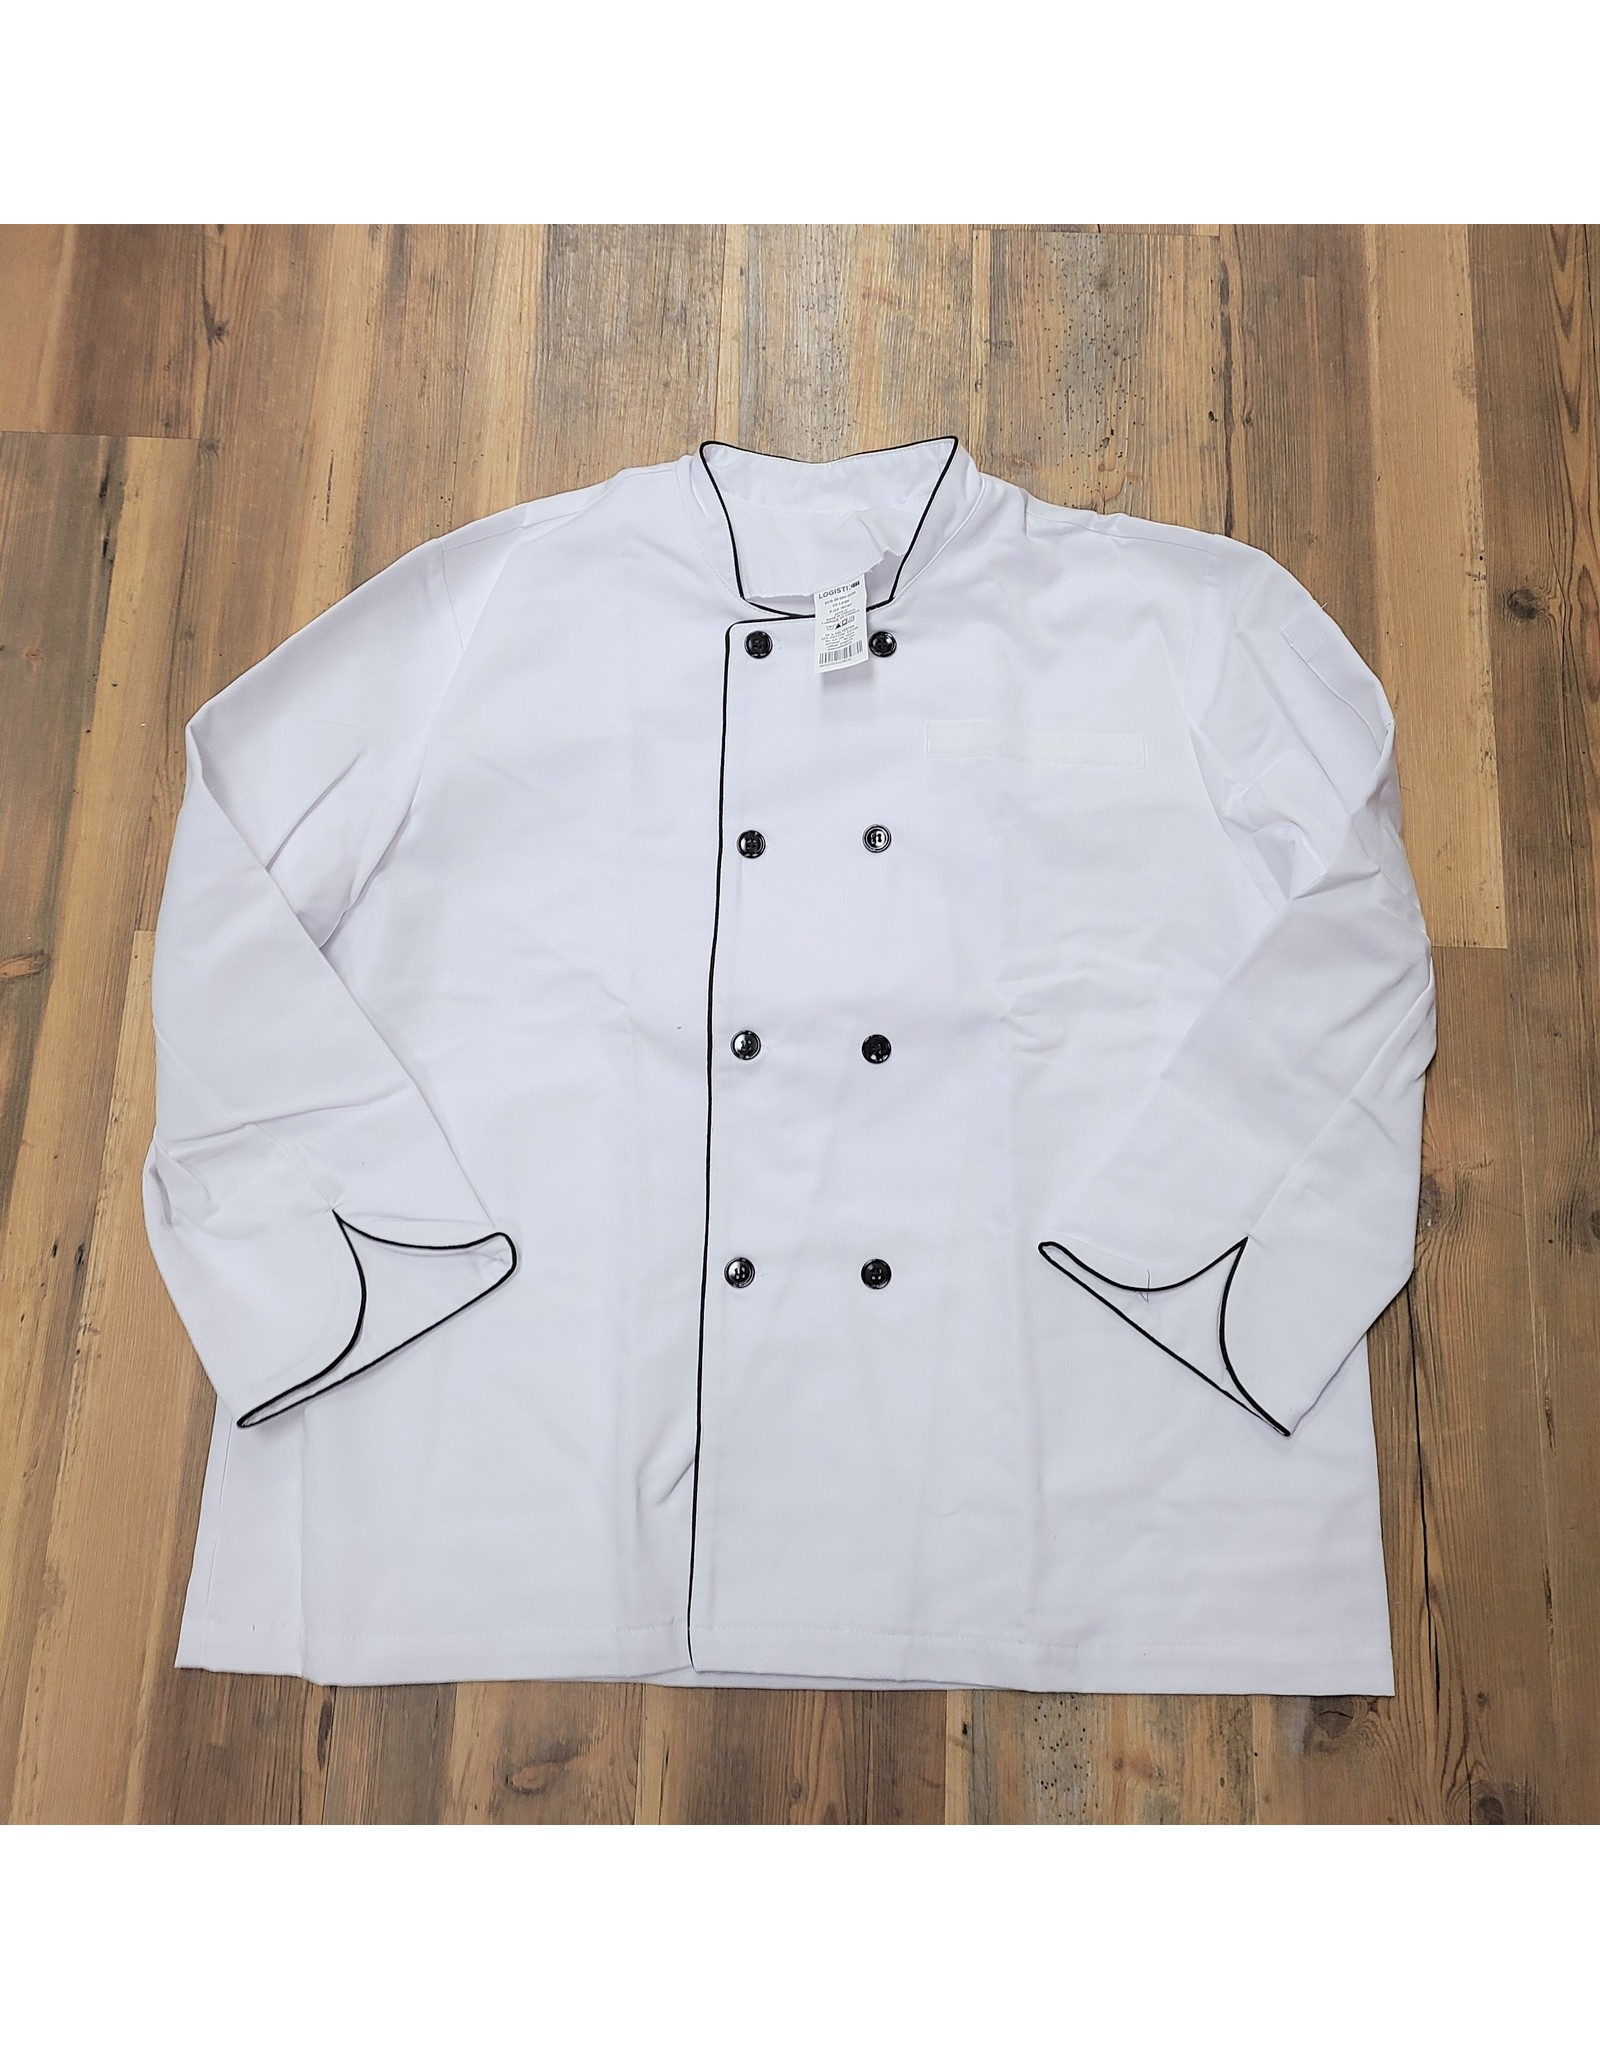 CANADIAN SURPLUS C.F. WHITE CHEF JACKET